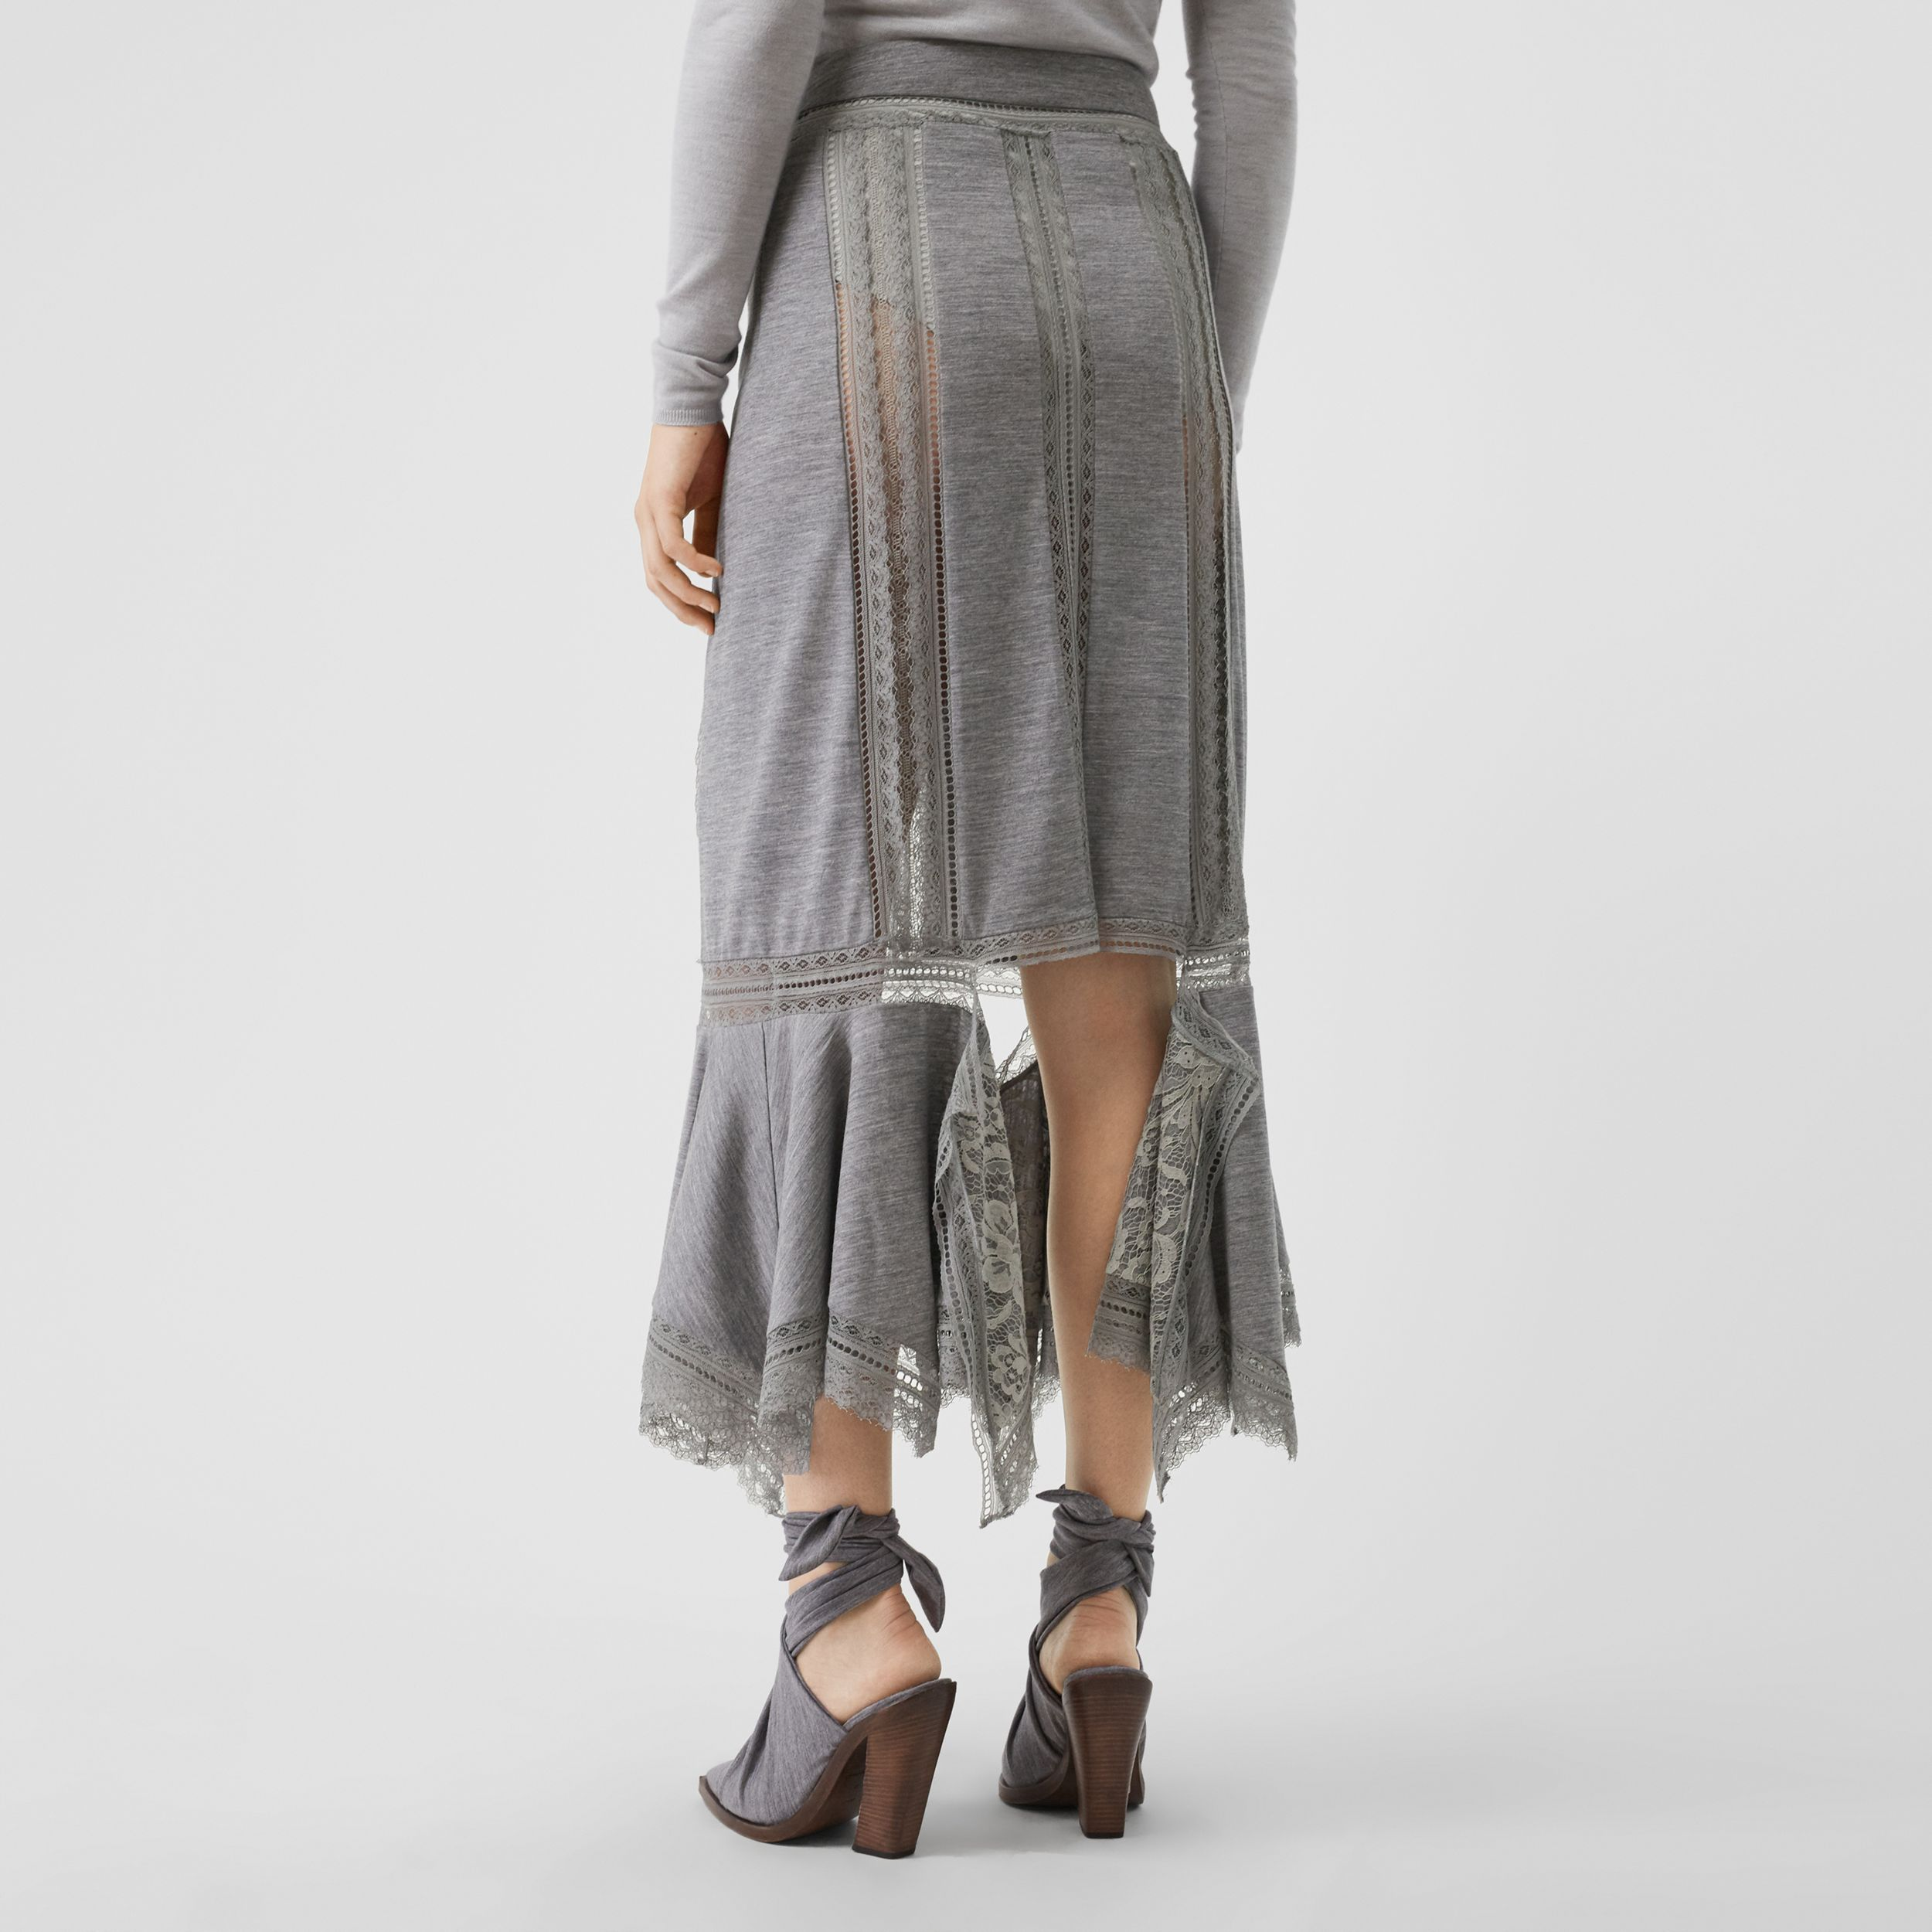 Chantilly Lace and Wool Jersey Skirt in Cloud Grey - Women | Burberry Hong Kong S.A.R. - 3